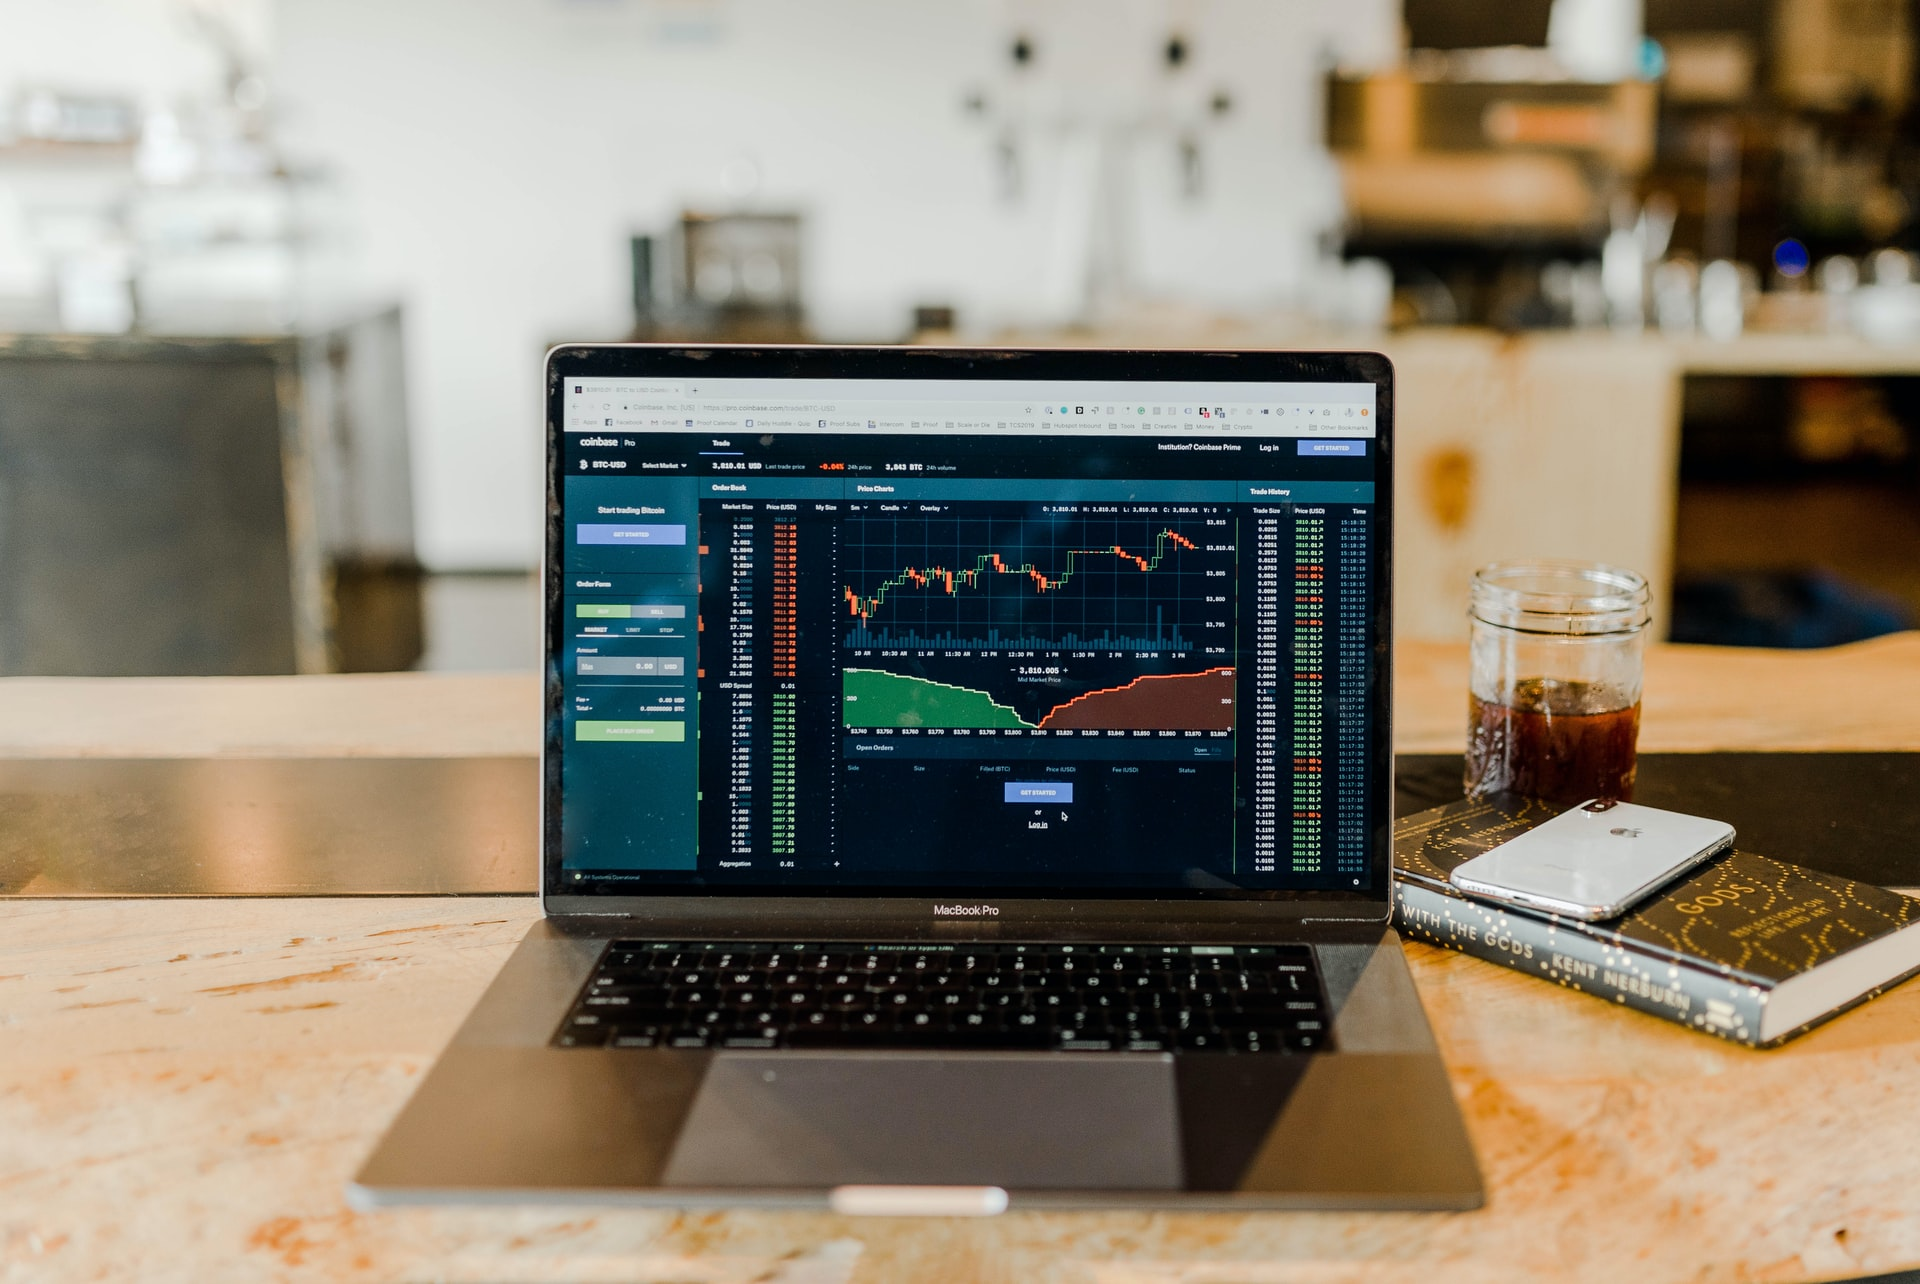 Why You Should Watch Pro Trading Live Streams